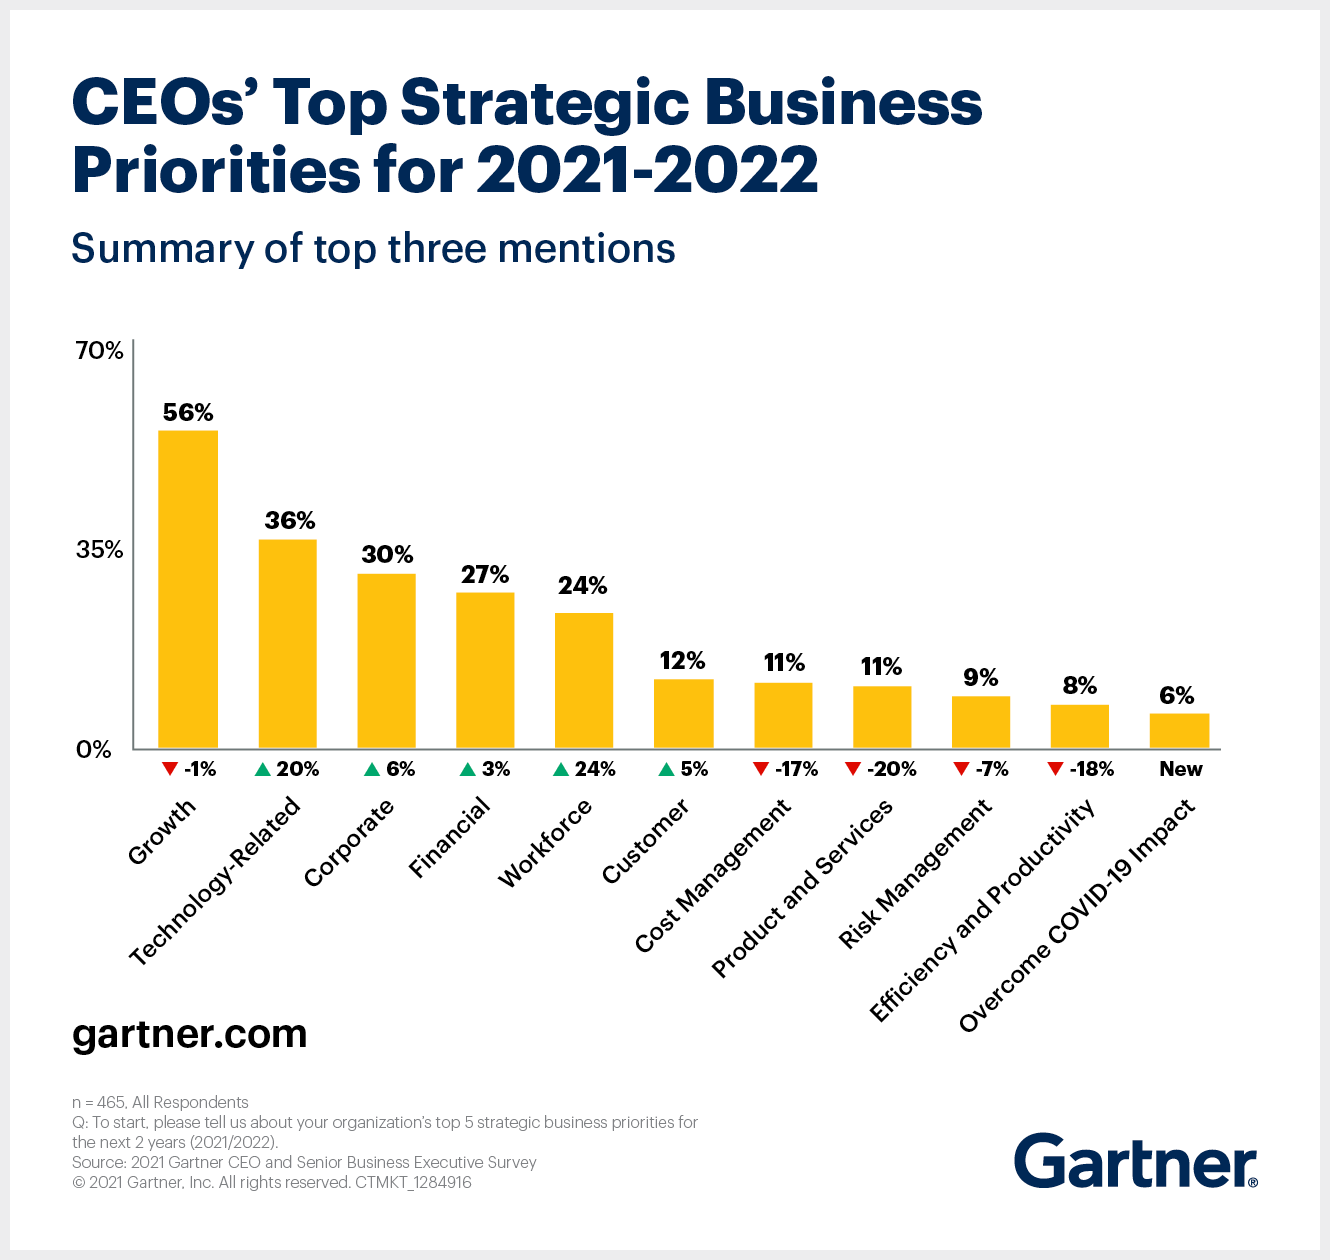 Gartner 2021 CEO Survey shows that growth tops of the list of strategic business priorities for CEOs for 2021-22